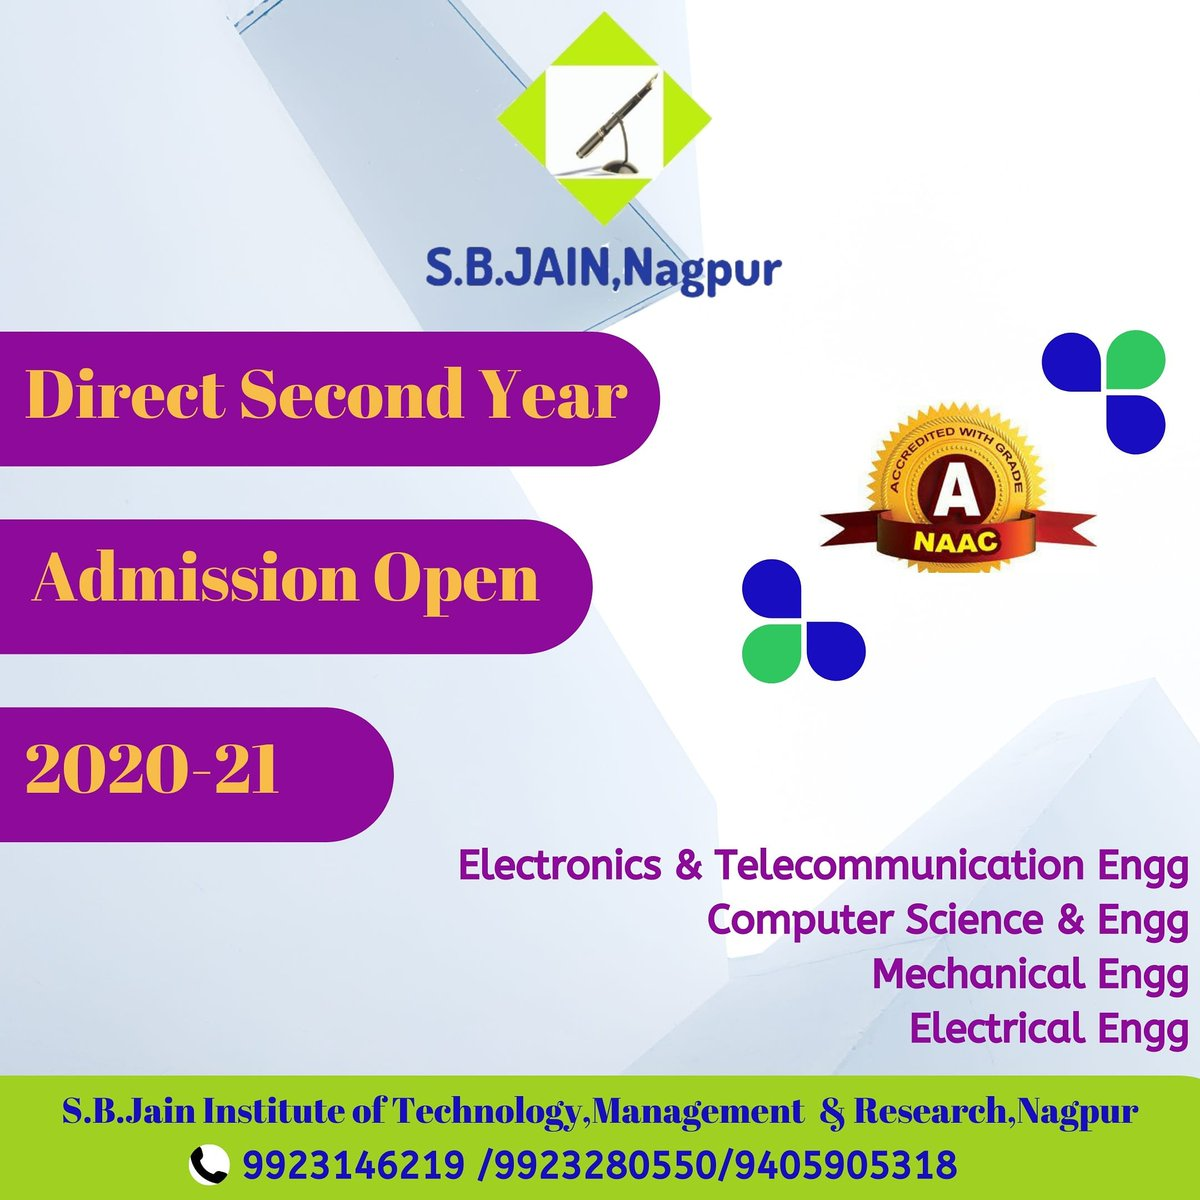 Attention !!!! Admissions open for the academic year 2020-21 in Direct Second Year. Call for more details and online process.  #MHCET #JEEMAINS #XII #HSC #Placement #Job #Sofware #Campus #SBJITMR  #College #Toppers #Engineering #Engineers #SBJain #AICTE #MHRD #RTMNU #Nagpurpic.twitter.com/sFKfCfblqJ